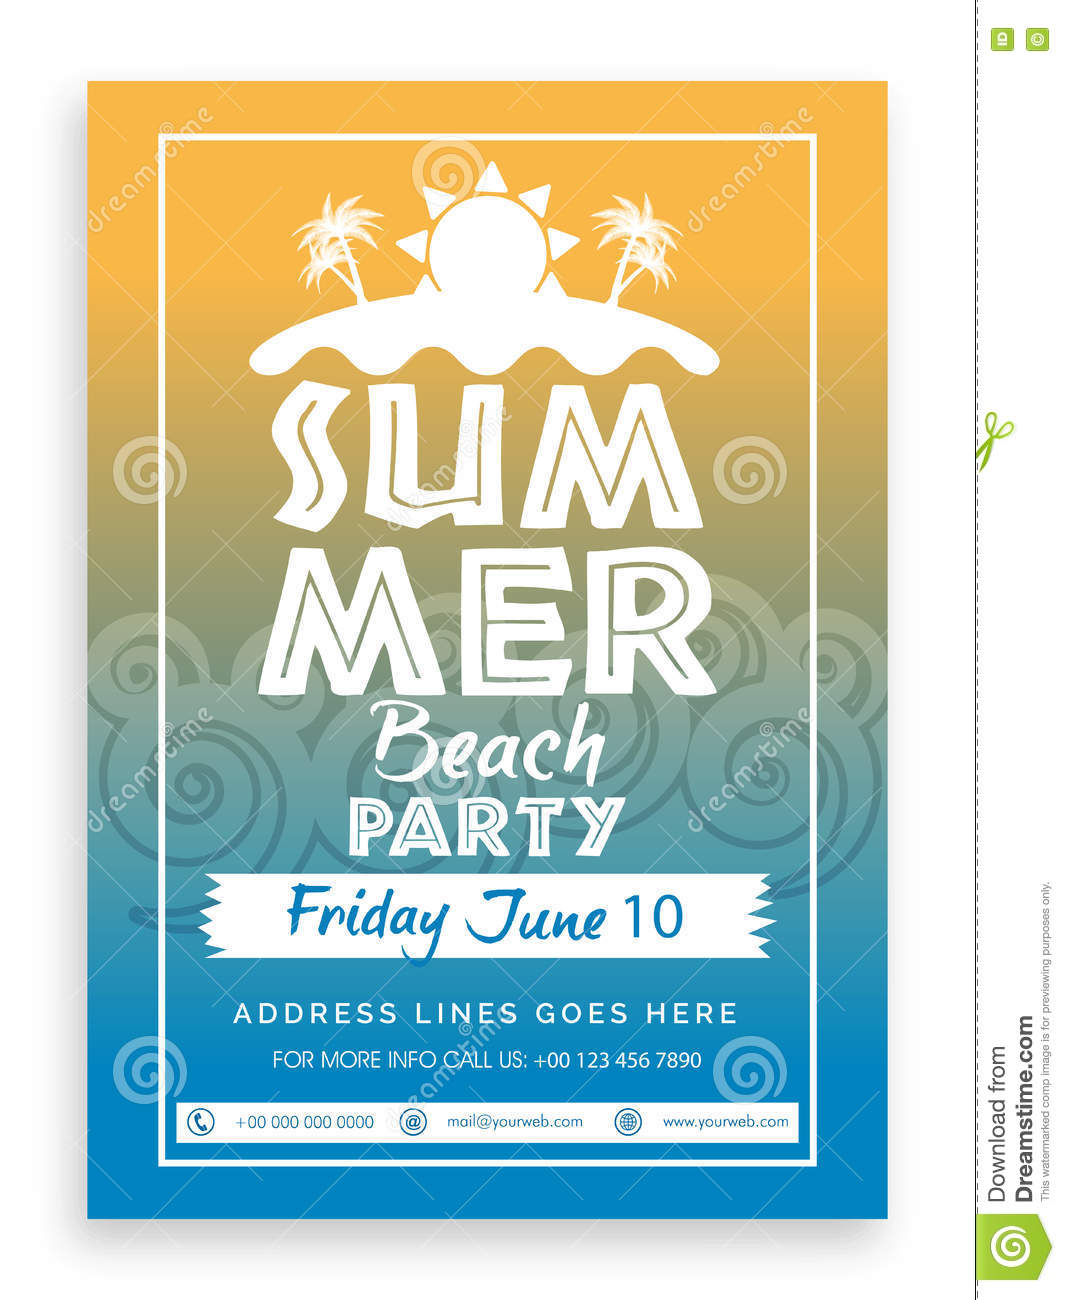 Summer Beach Party Template, Banner Or Invitation. Stock ...